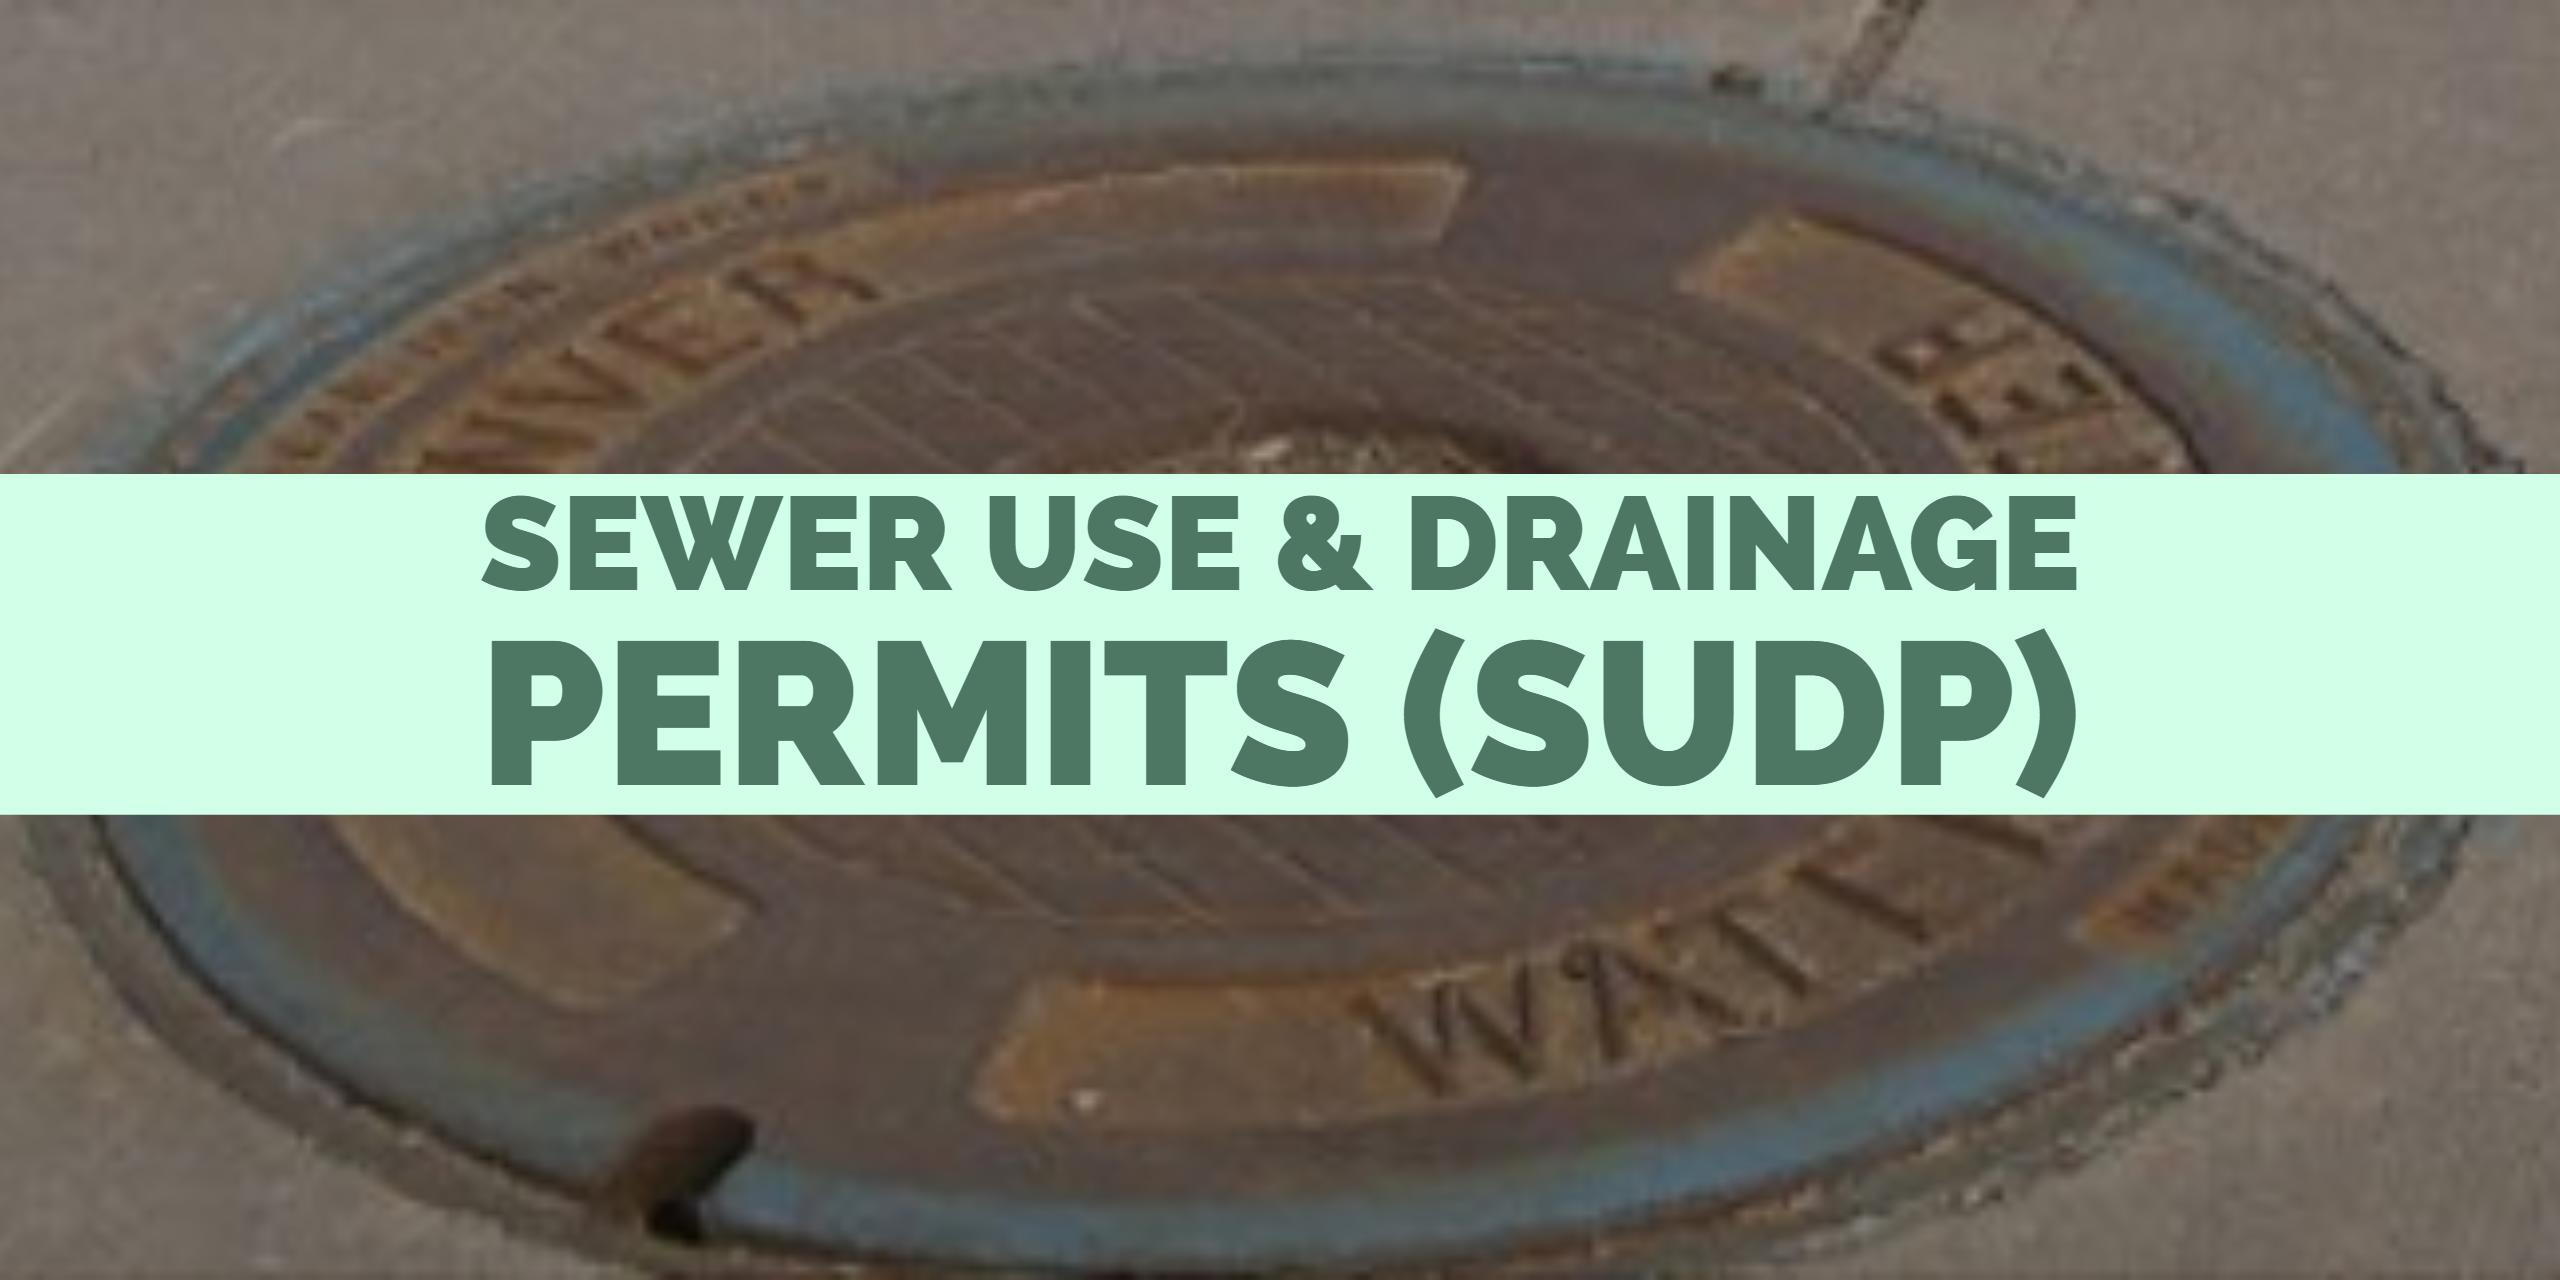 Link to Sewer Use & Drainage Permits (SUDP) page at www.denvergov.org/SUDP